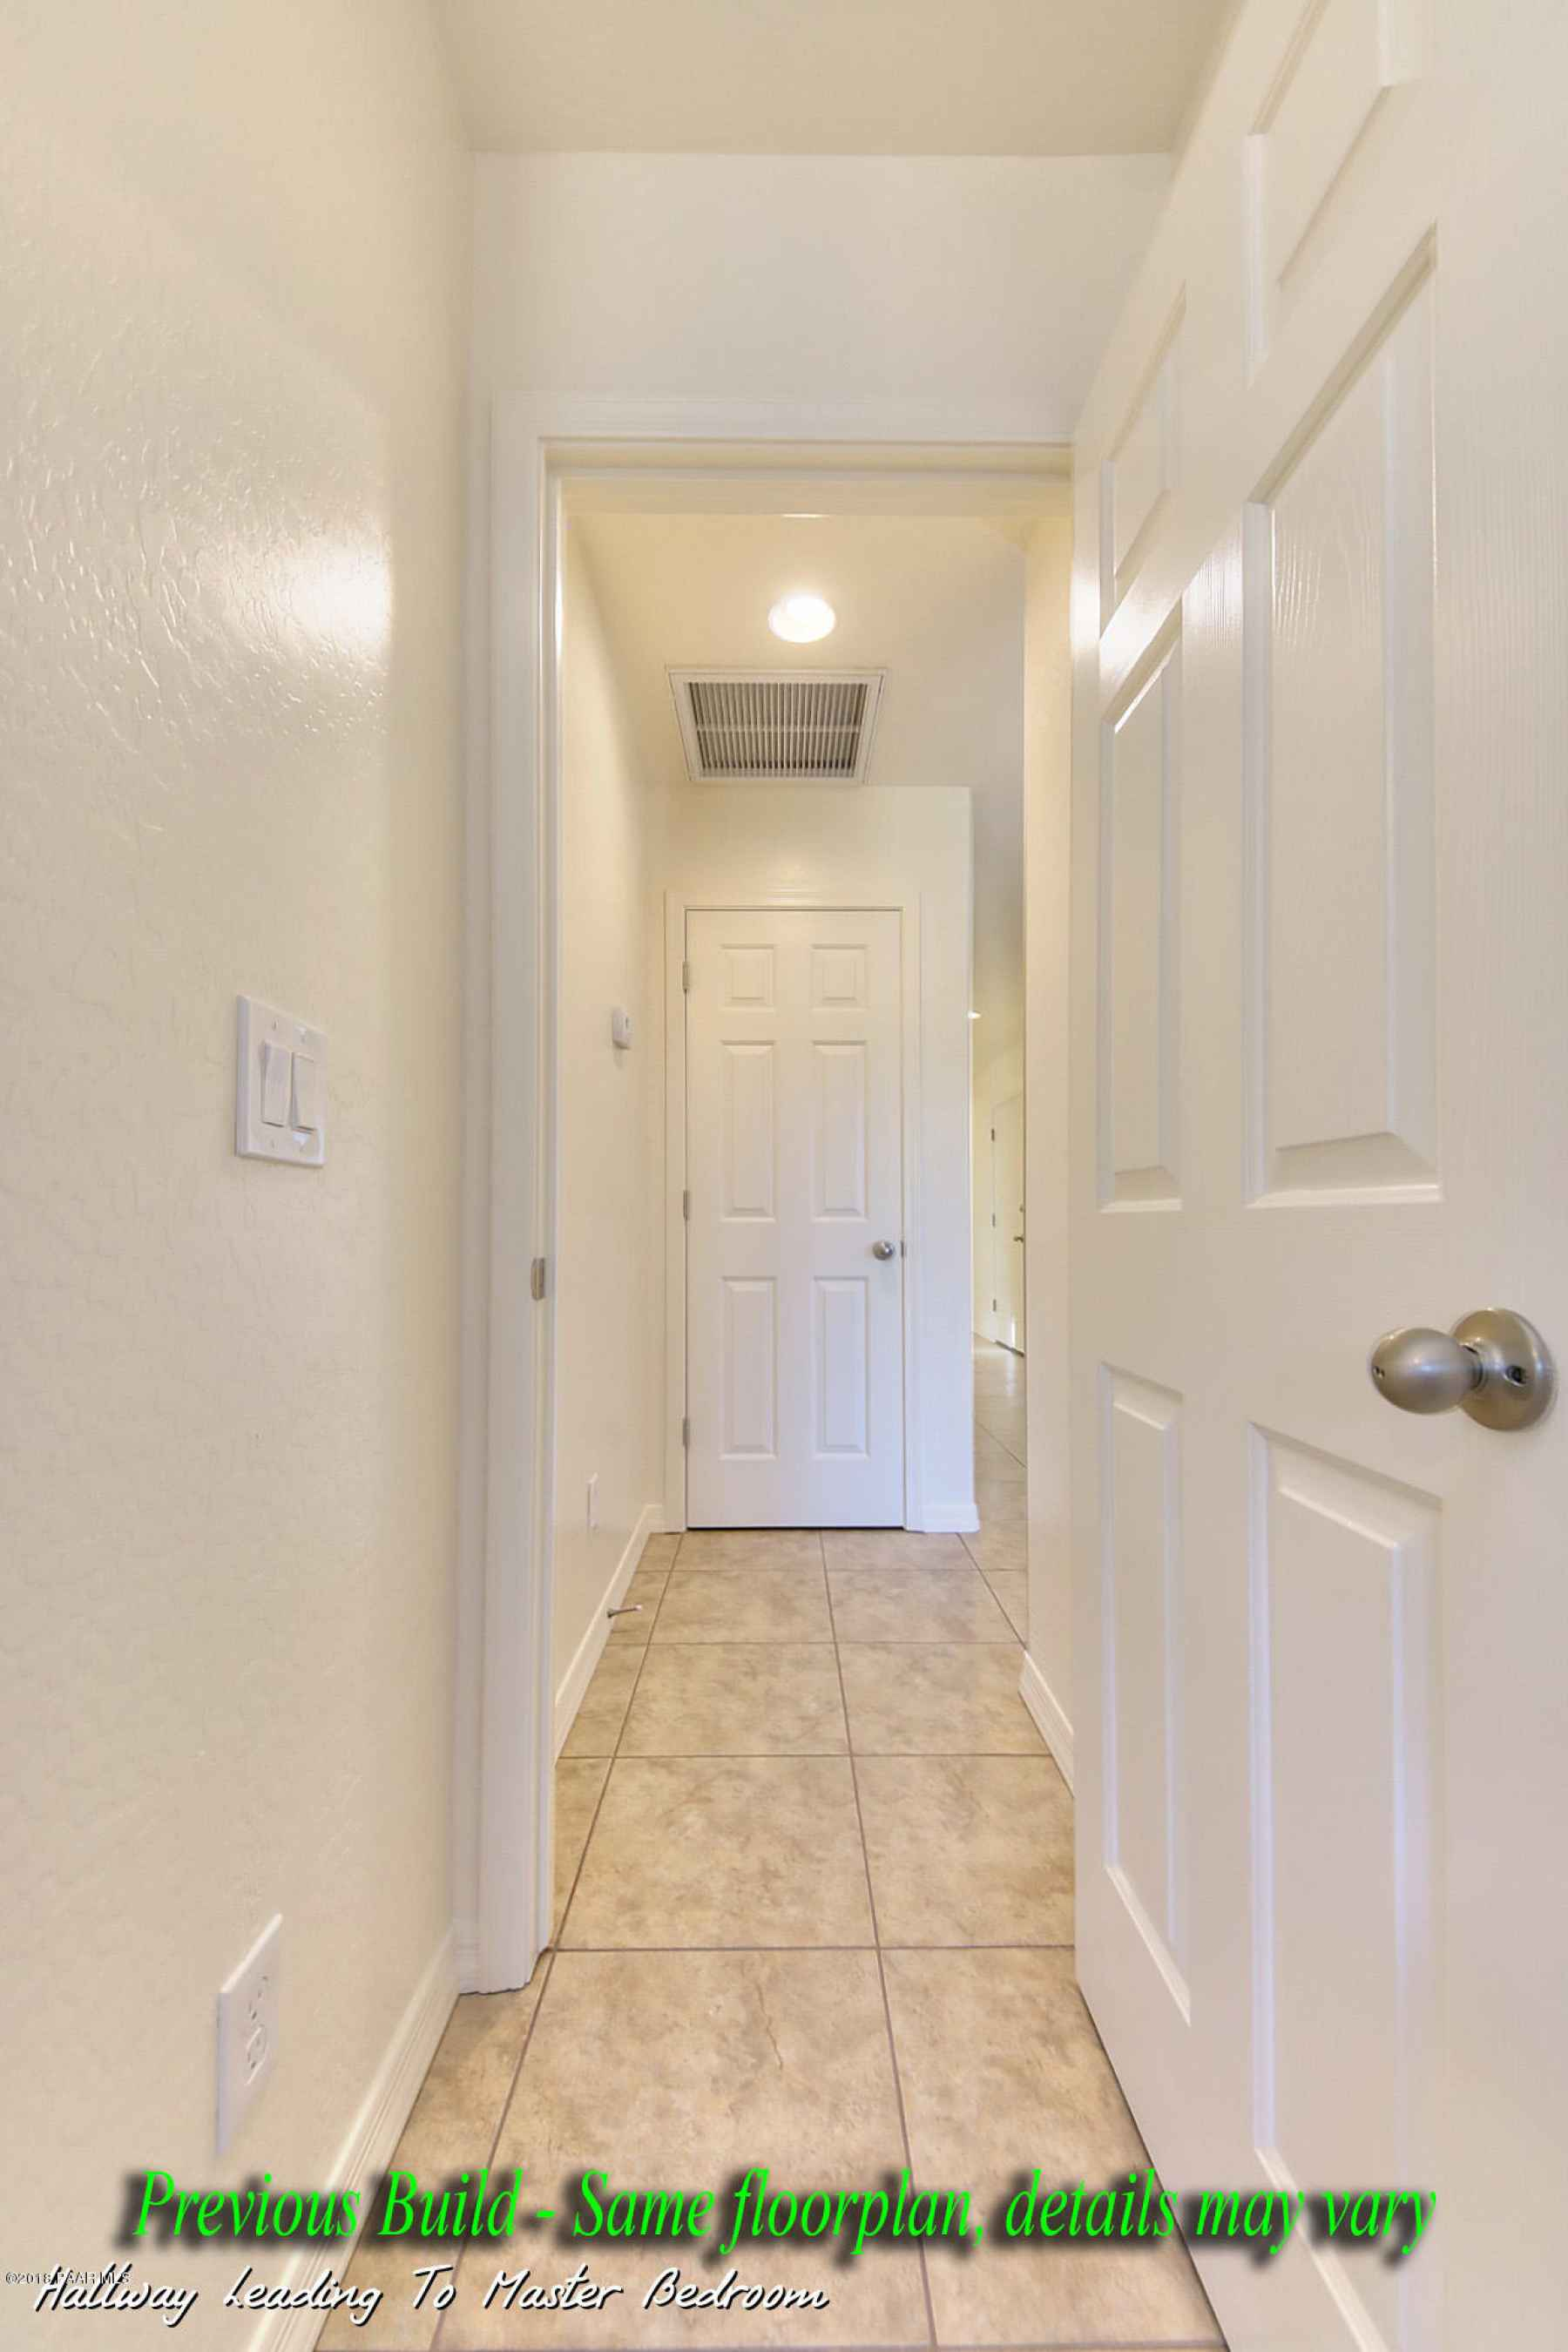 Hallway Leading To Master Bedroom Pic 1